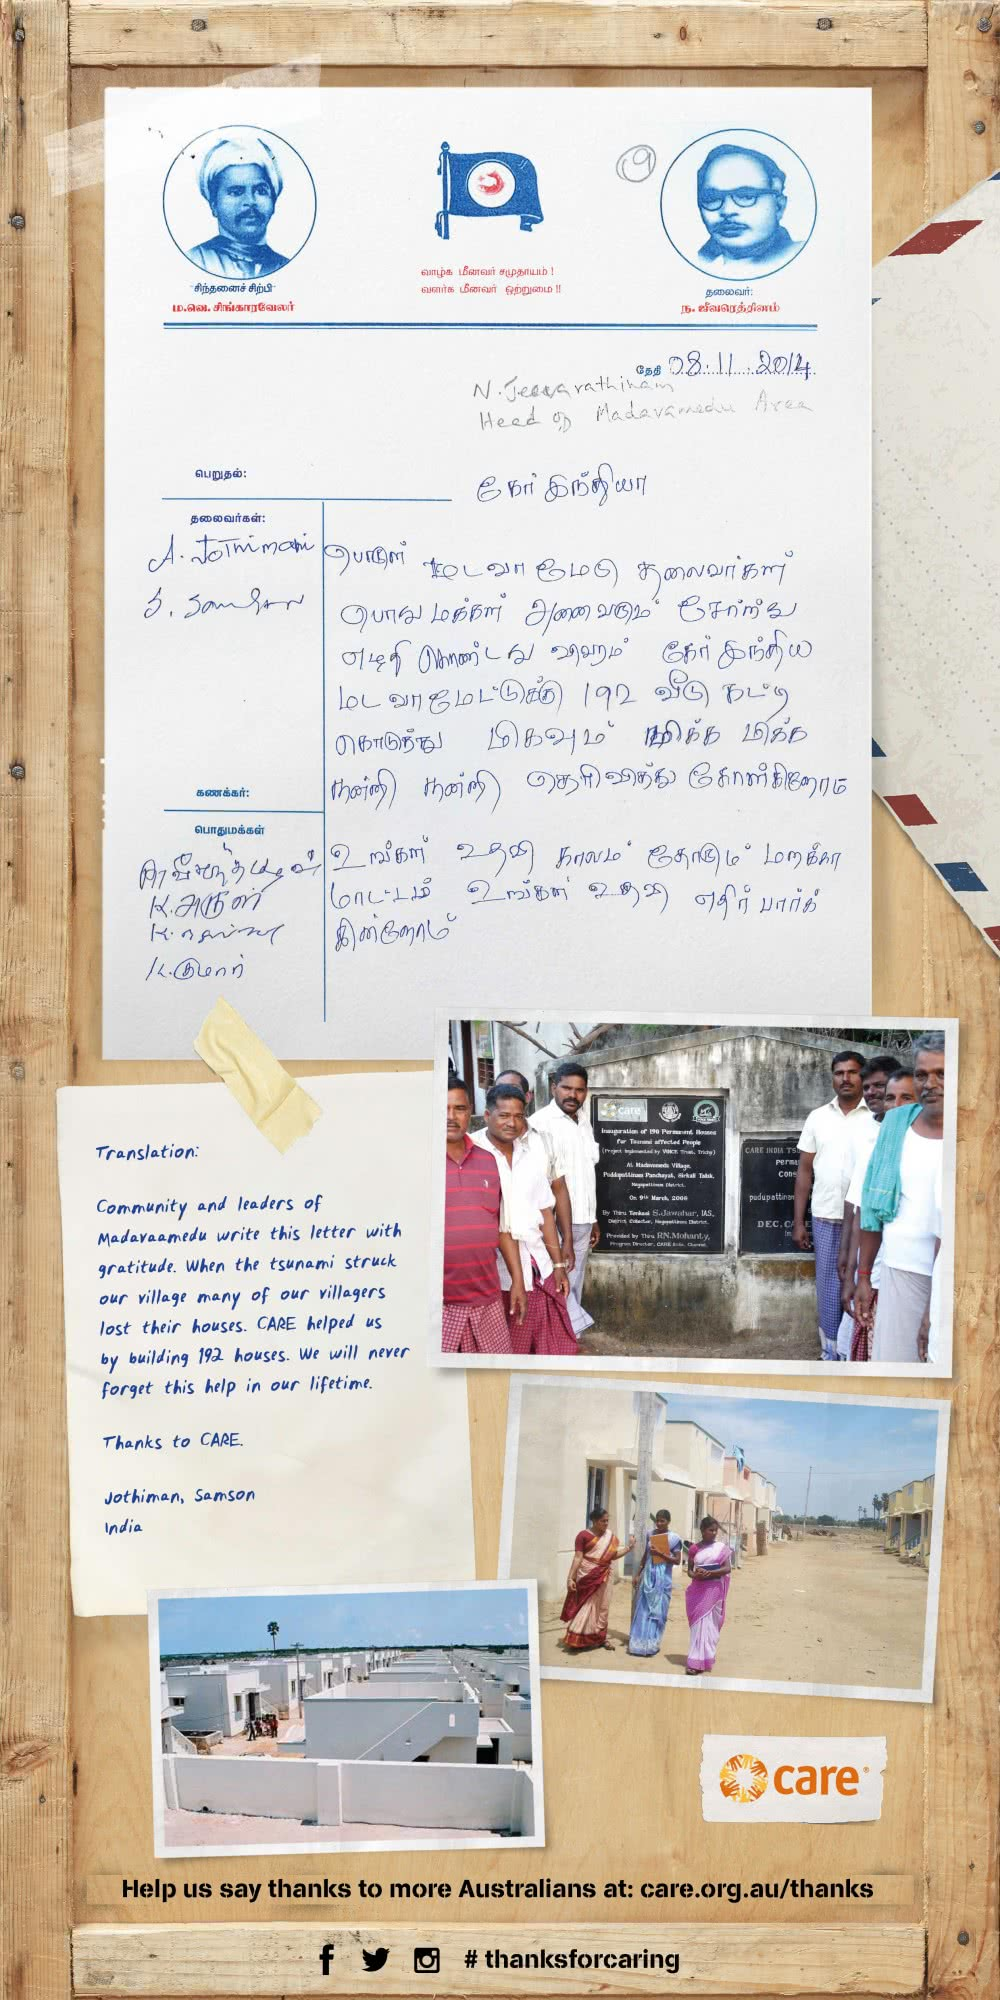 Thank you letter from Jothiman Samson, India